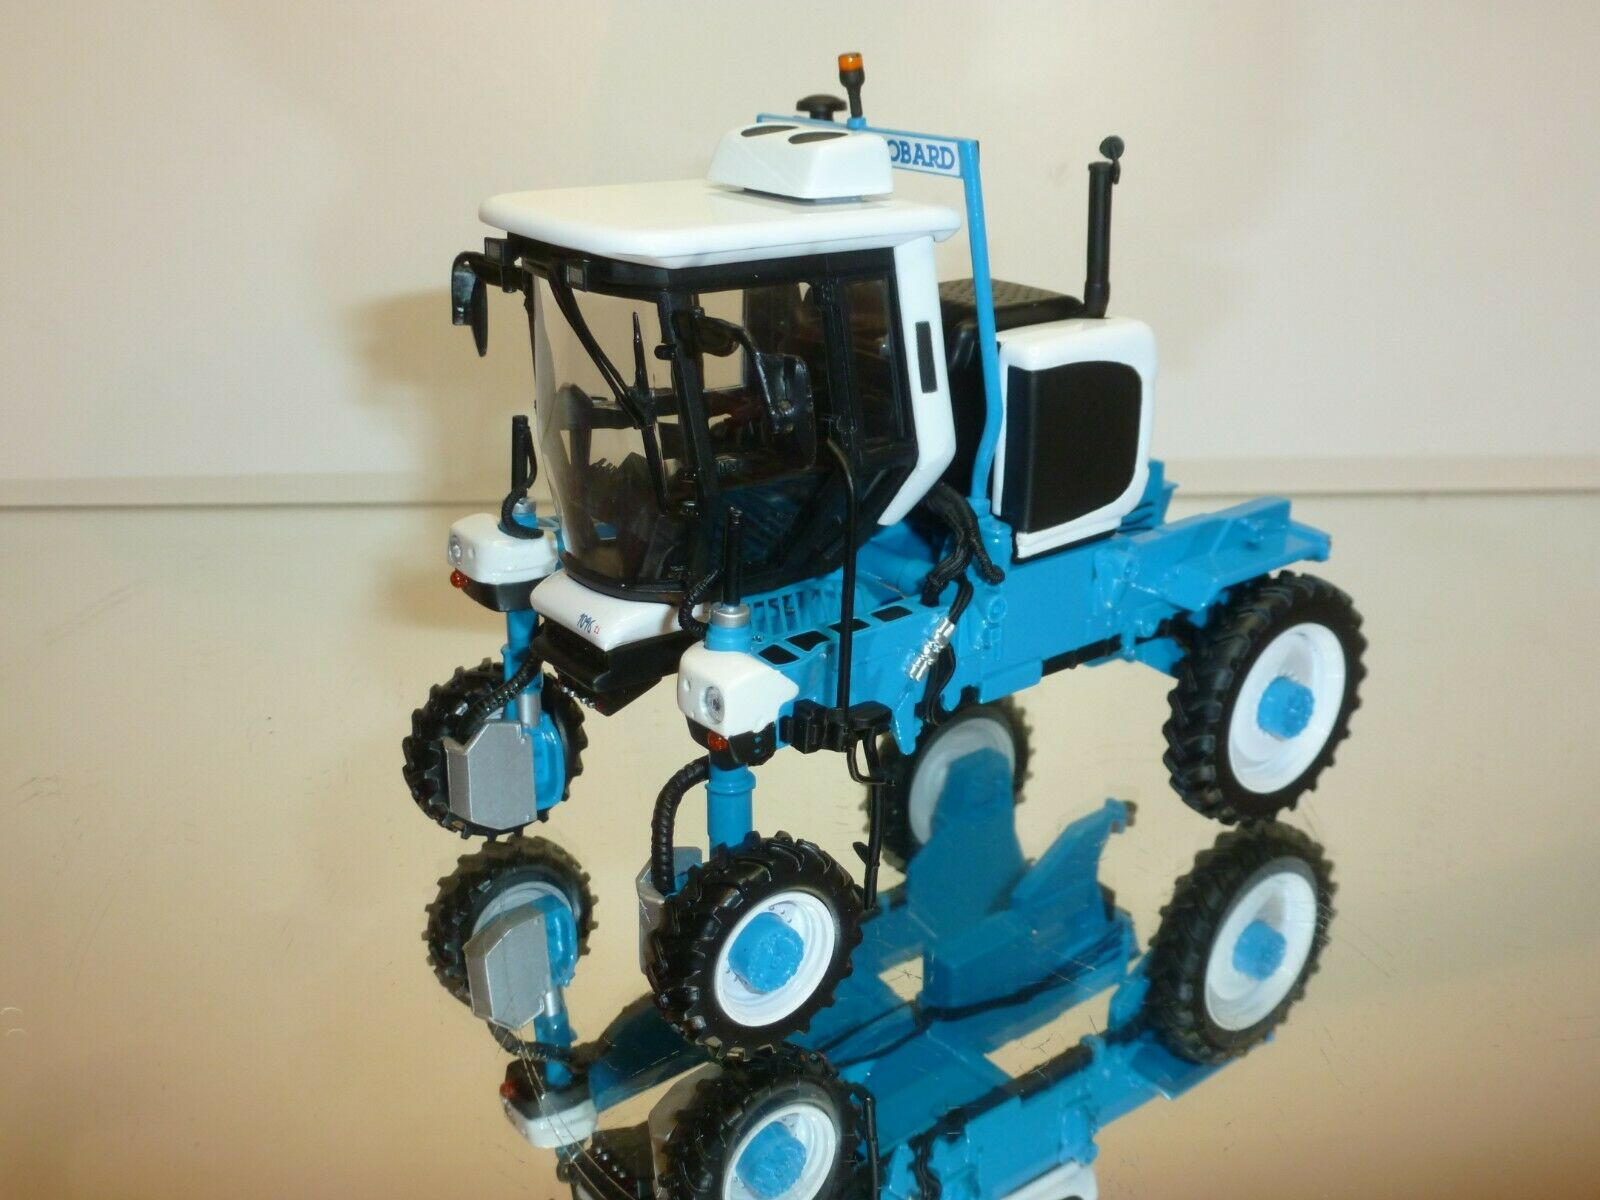 MPS DEVELOPMENT BOBARD 1096 STRADDLE TRACTOR - blueE 1 32 - VERY GOOD CONDITION